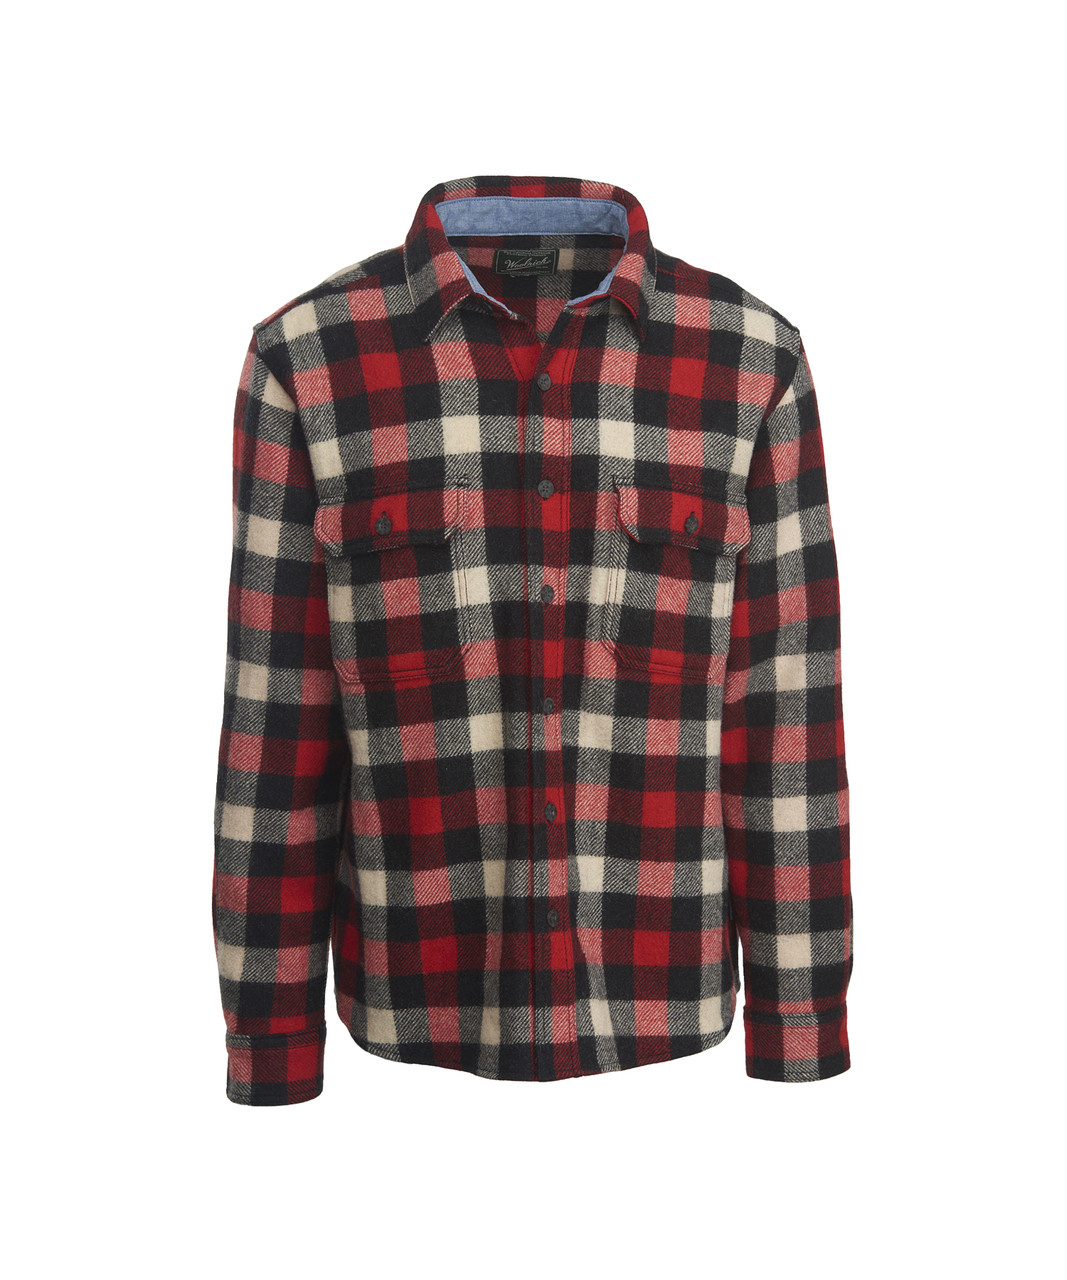 5b1650c9 Men's Buffalo Check Wool Shirt. 6135 model RED/WHITE/BLACK/PLAID